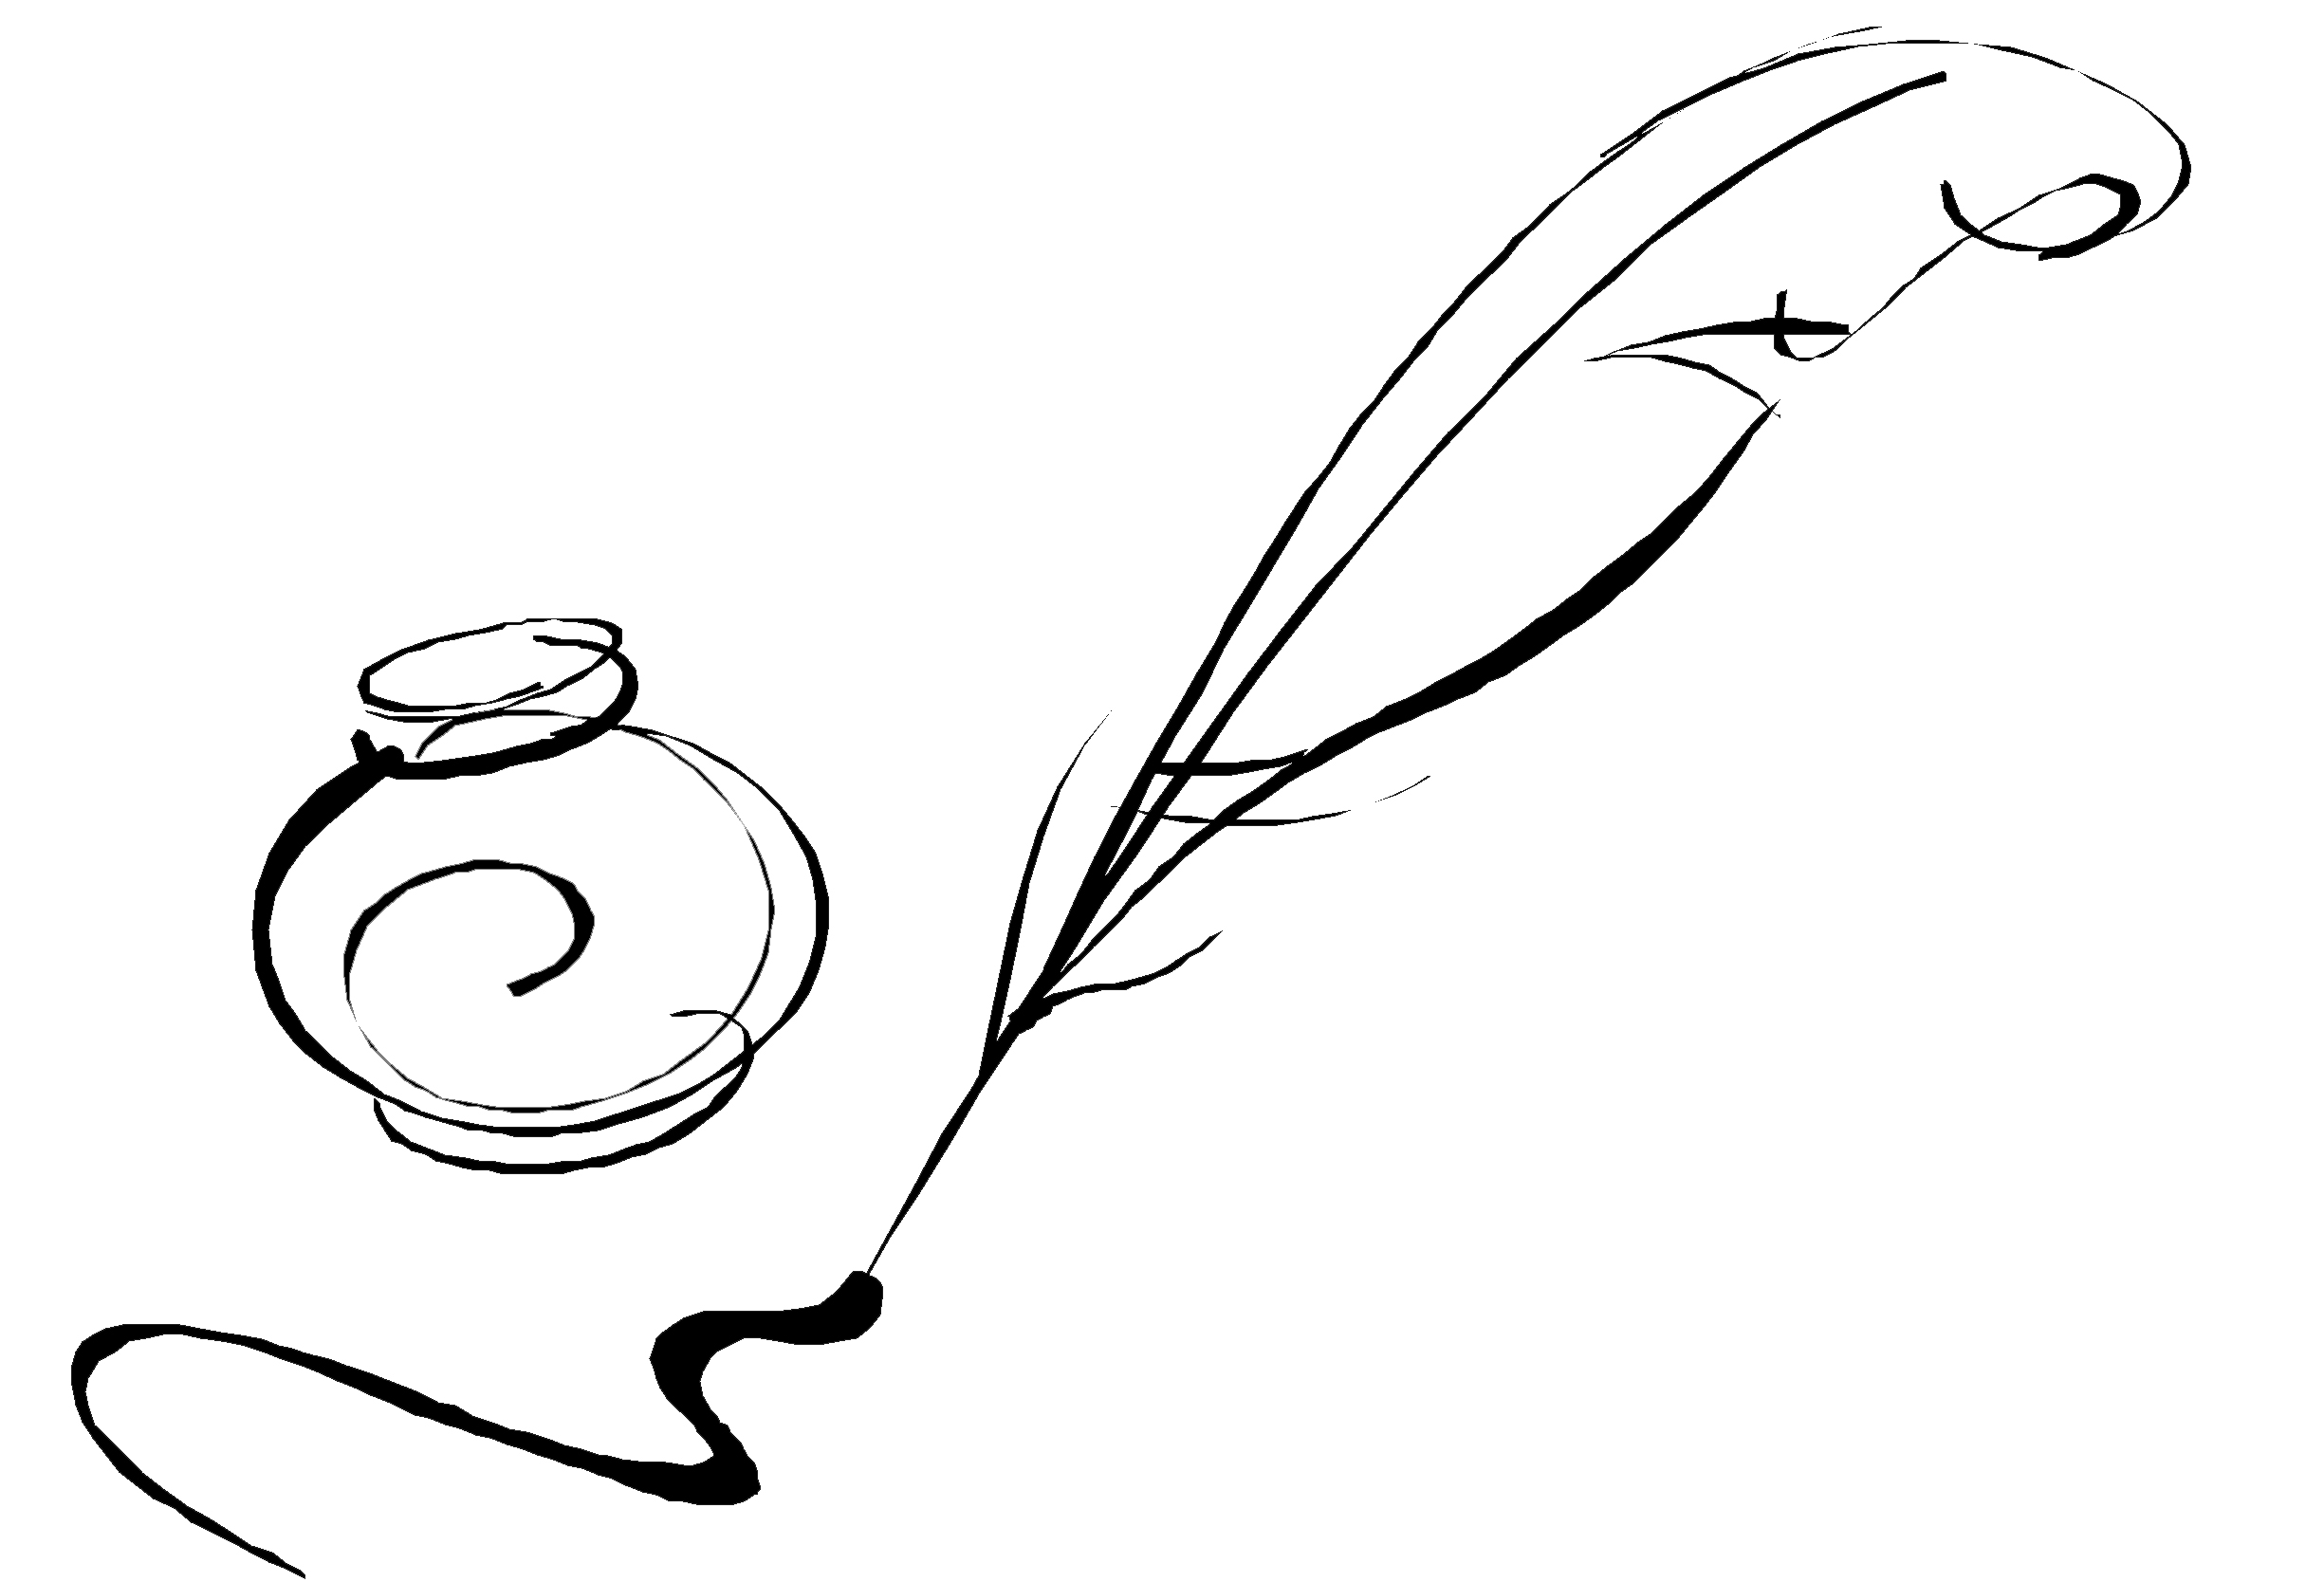 Line Drawing Of Quill : Quill pen image cliparts